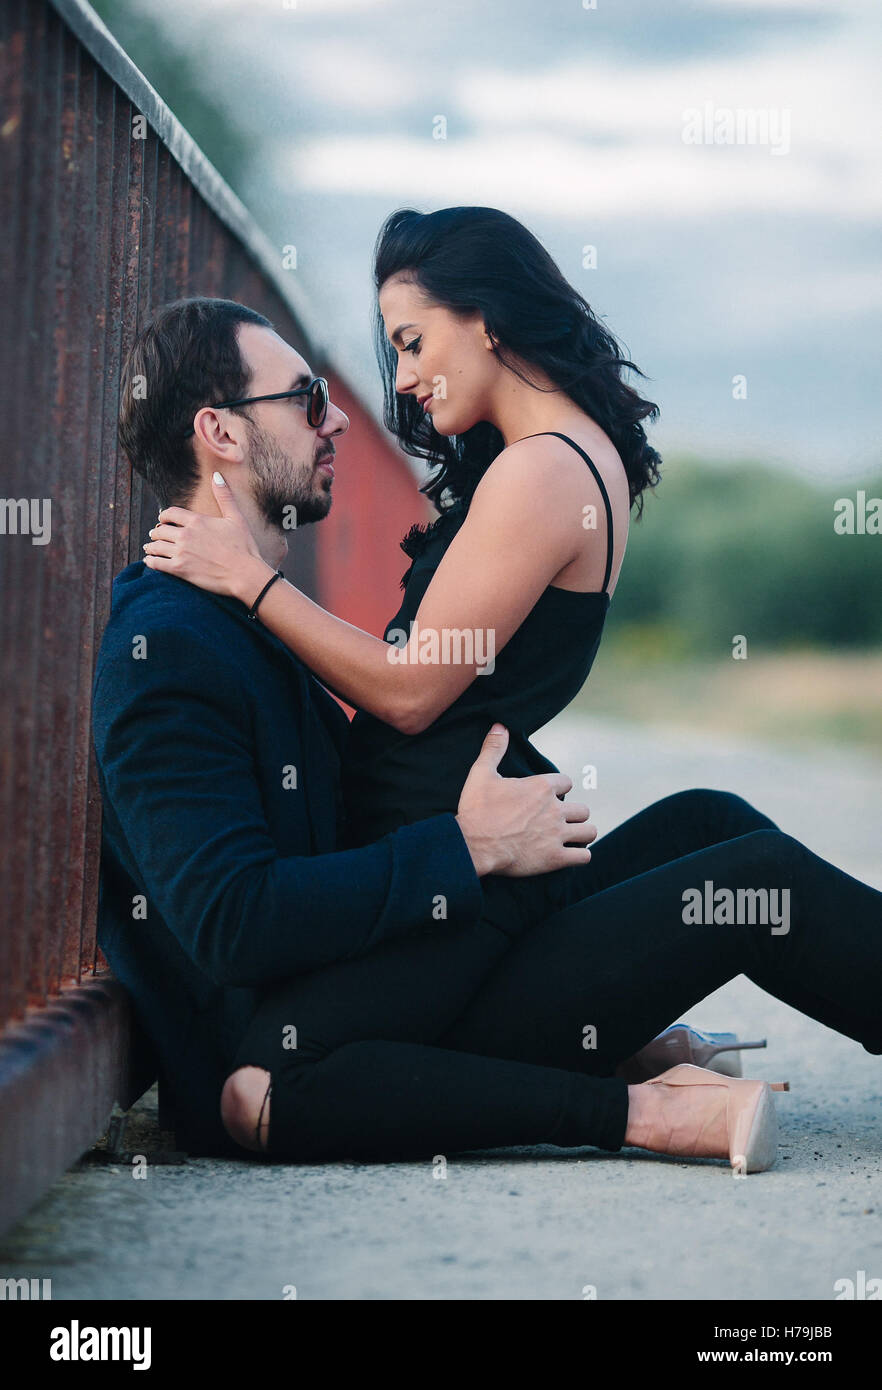 girl sits on a guy - Stock Image